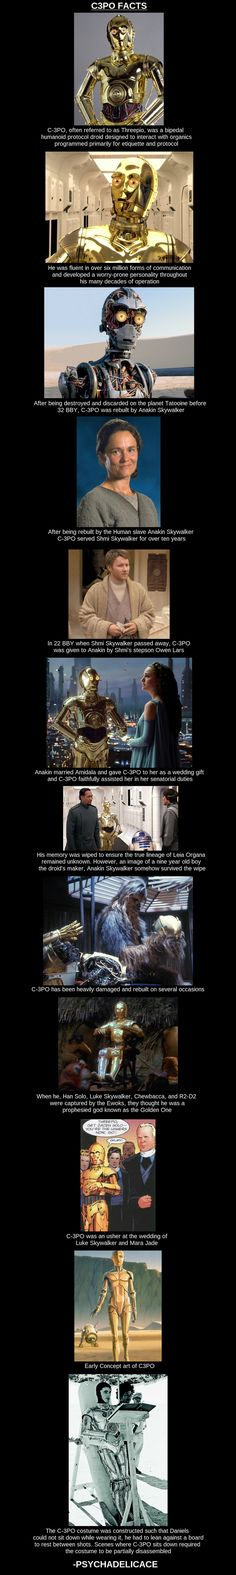 C-3PO - funny pictures #funnypictures